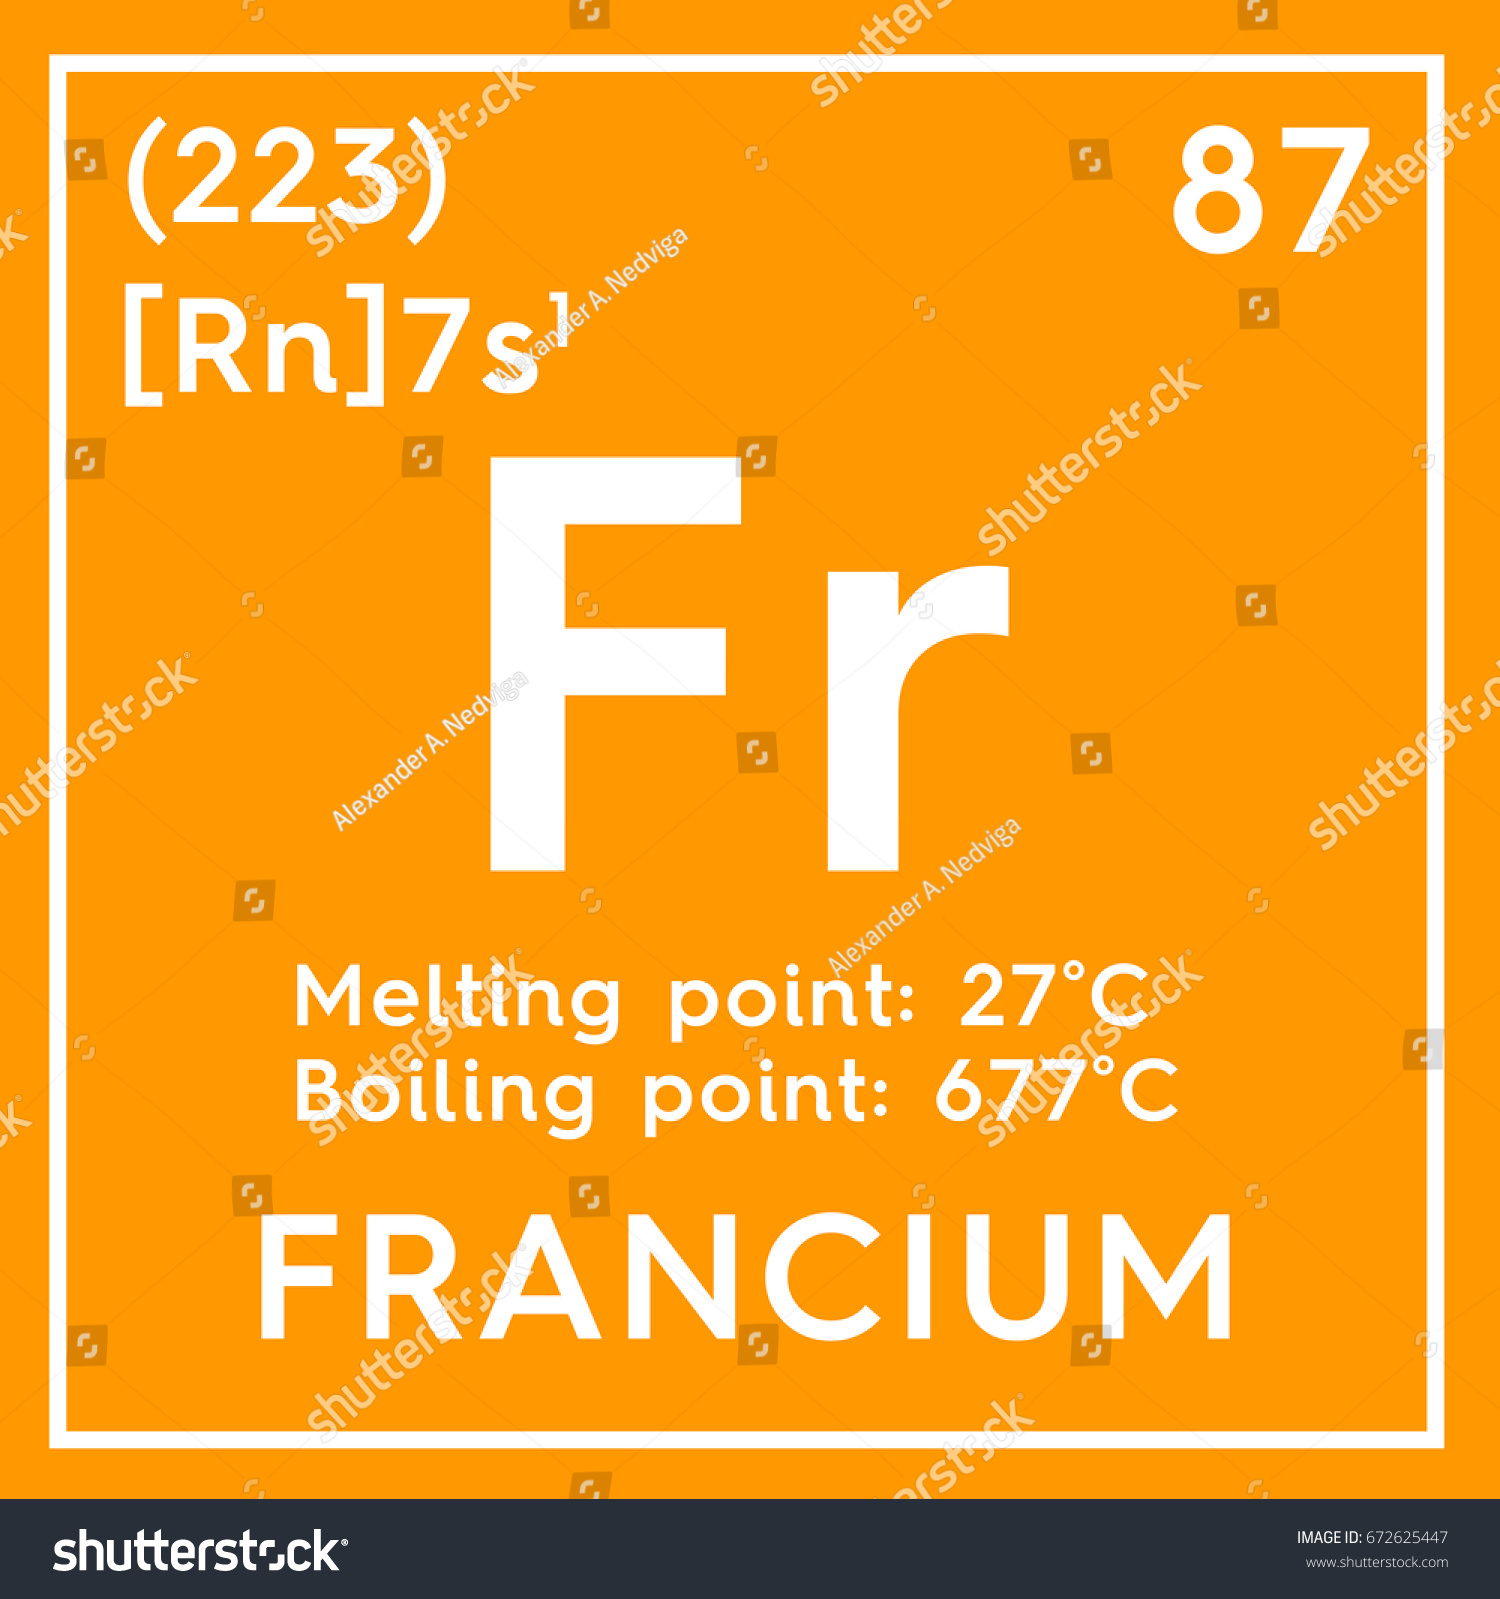 14th element periodic table image collections periodic table images periodic table francium gallery periodic table images francium alkali metals chemical element mendeleevs stock francium alkali gamestrikefo Gallery